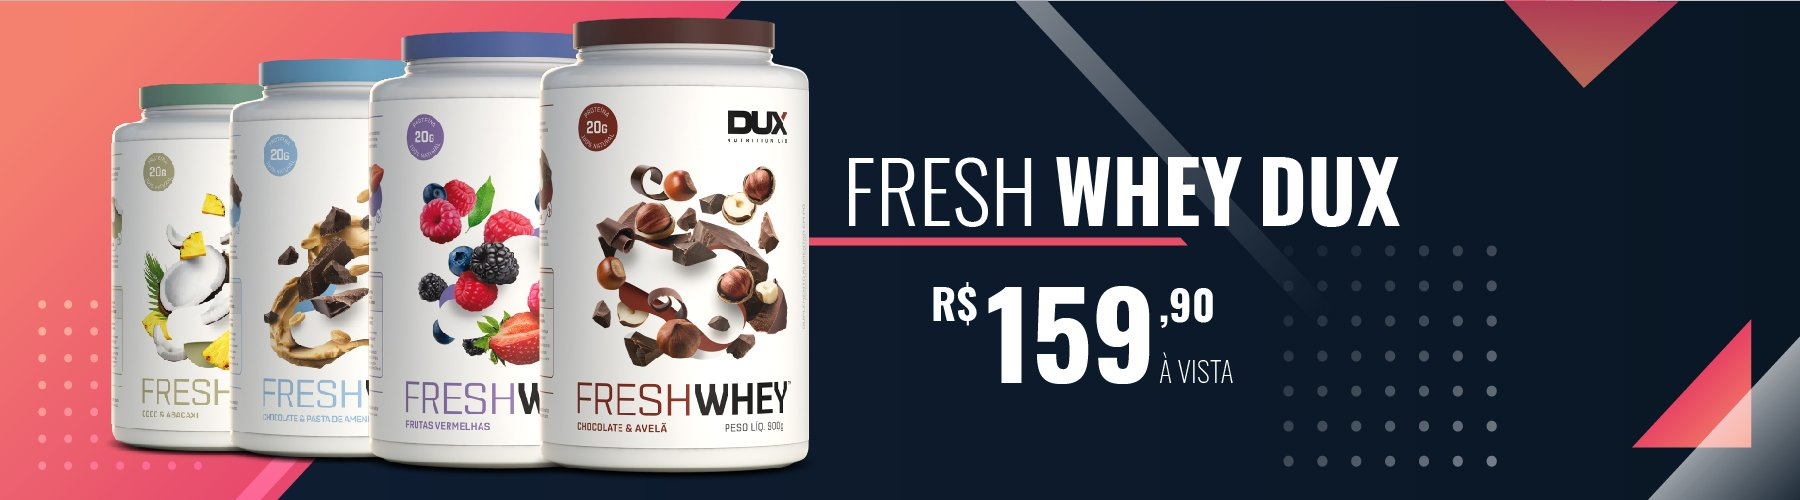 Fresh Whey Dux